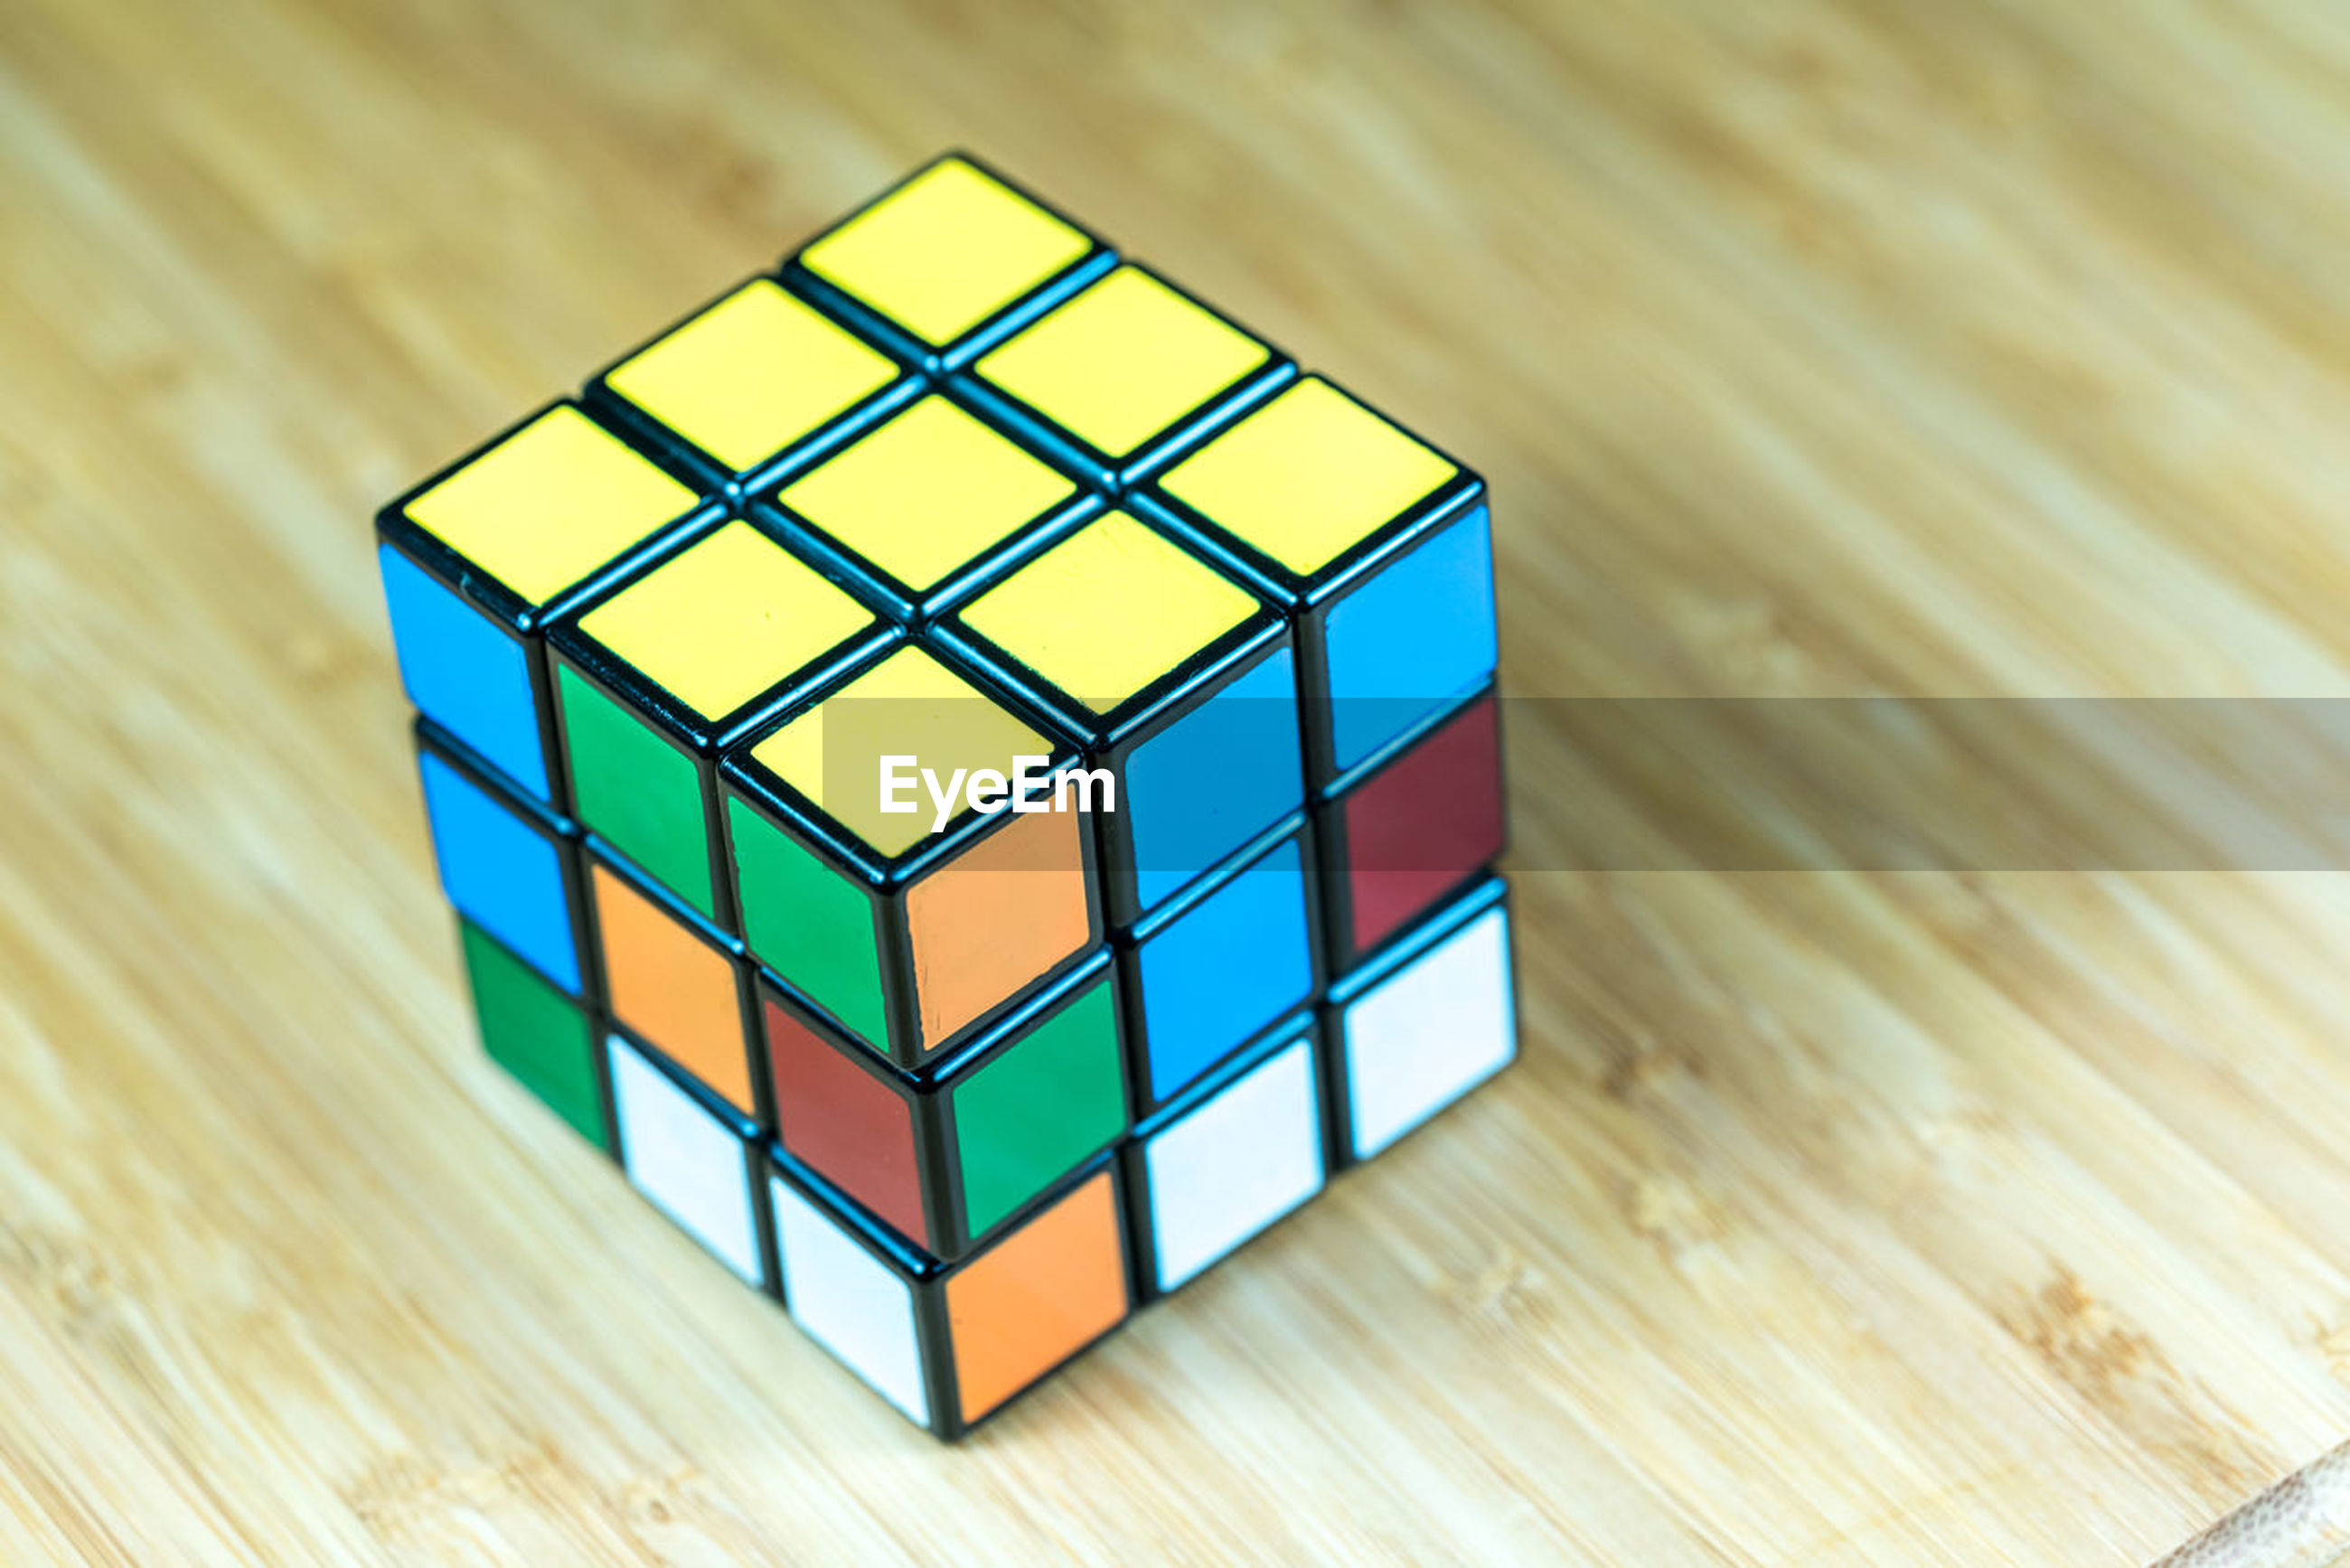 wood - material, indoors, geometric shape, shape, toy block, still life, multi colored, square shape, puzzle, table, high angle view, pattern, no people, focus on foreground, close-up, strategy, yellow, leisure games, day